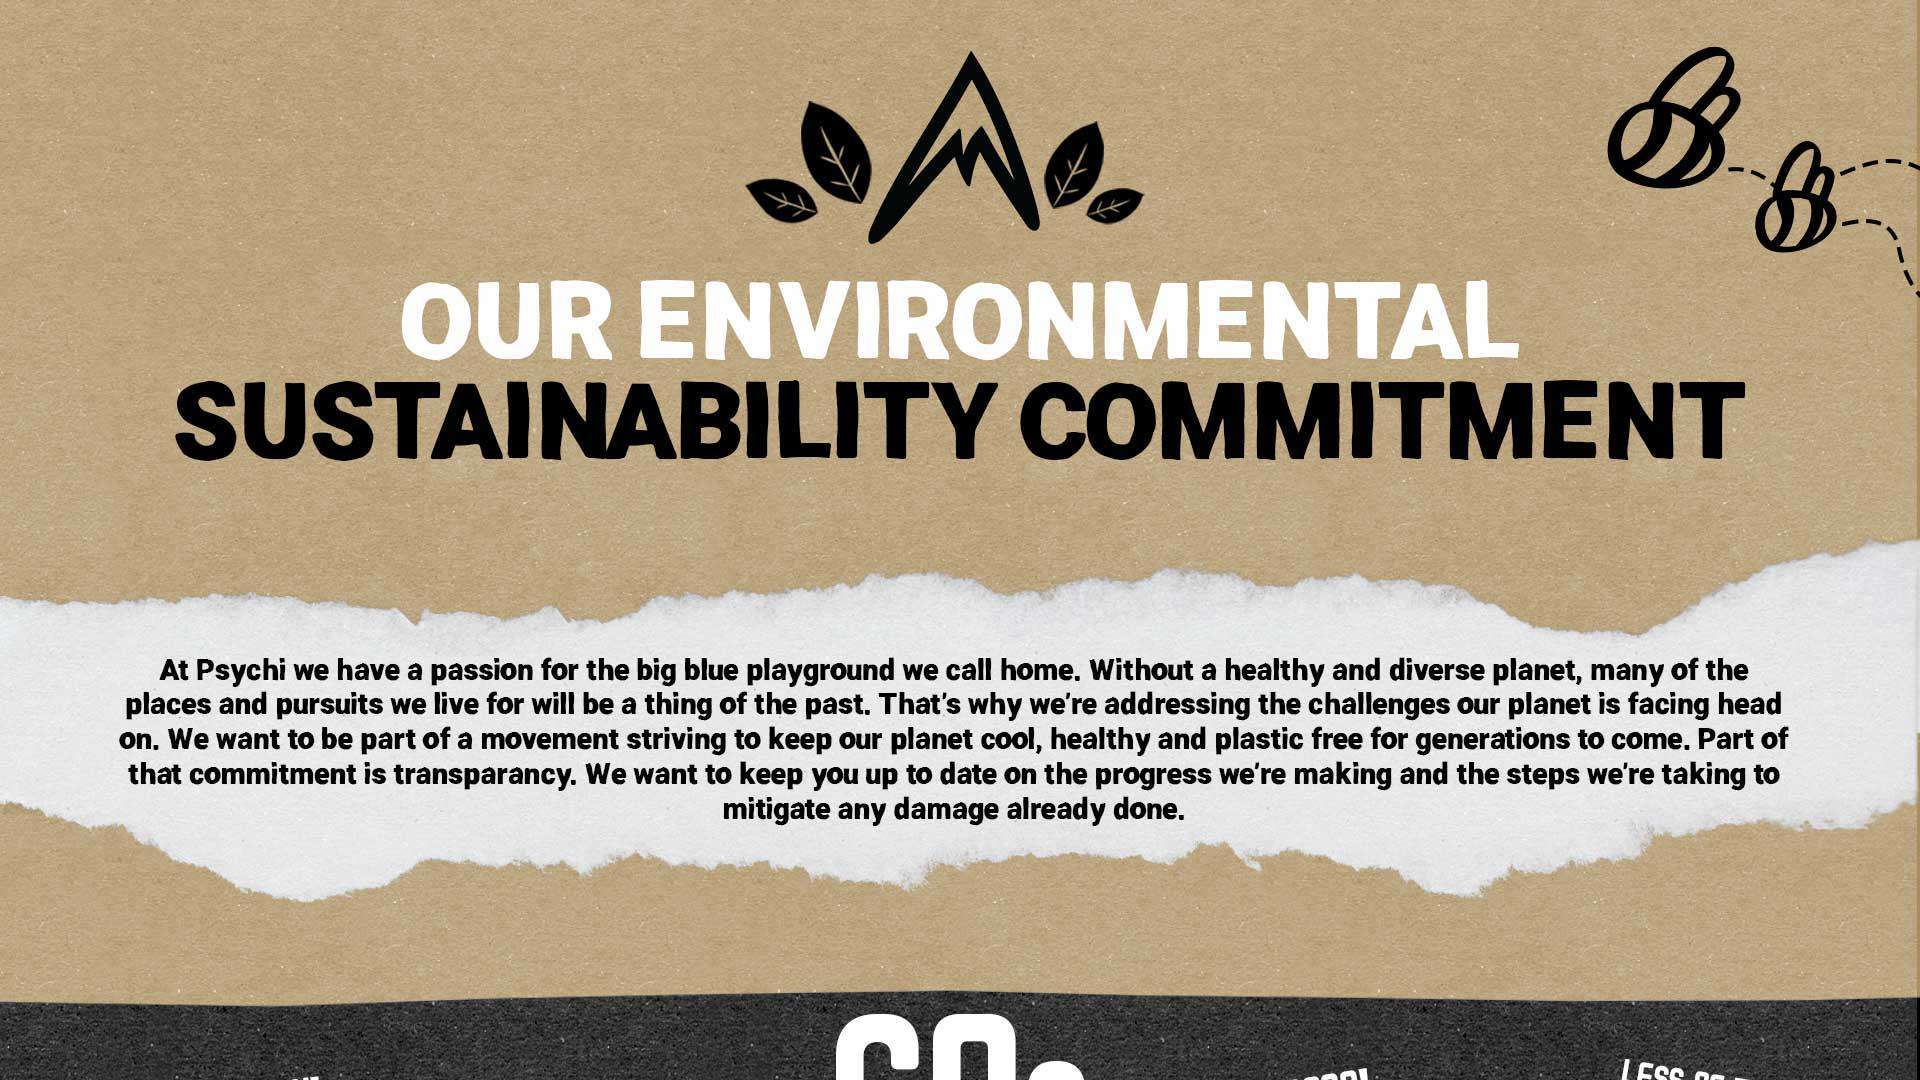 OUR ENVIRONMENTAL SUSTAINABILITY COMMITMENT. At Psychi we have a passion for the big blue playground we call home. Without a healthy and diverse planet, many of the places and pursuits we live for will be a thing of the past. That's why we're addressing the challenges our planet is facing head on. We want to be part of a movement striving to keep our planet cool, healthy and plastic free for generations to come. Part of that commitment is transparancy. We want to keep you up to date on the progress we're making and the steps we're taking to mitigate any damage already done.